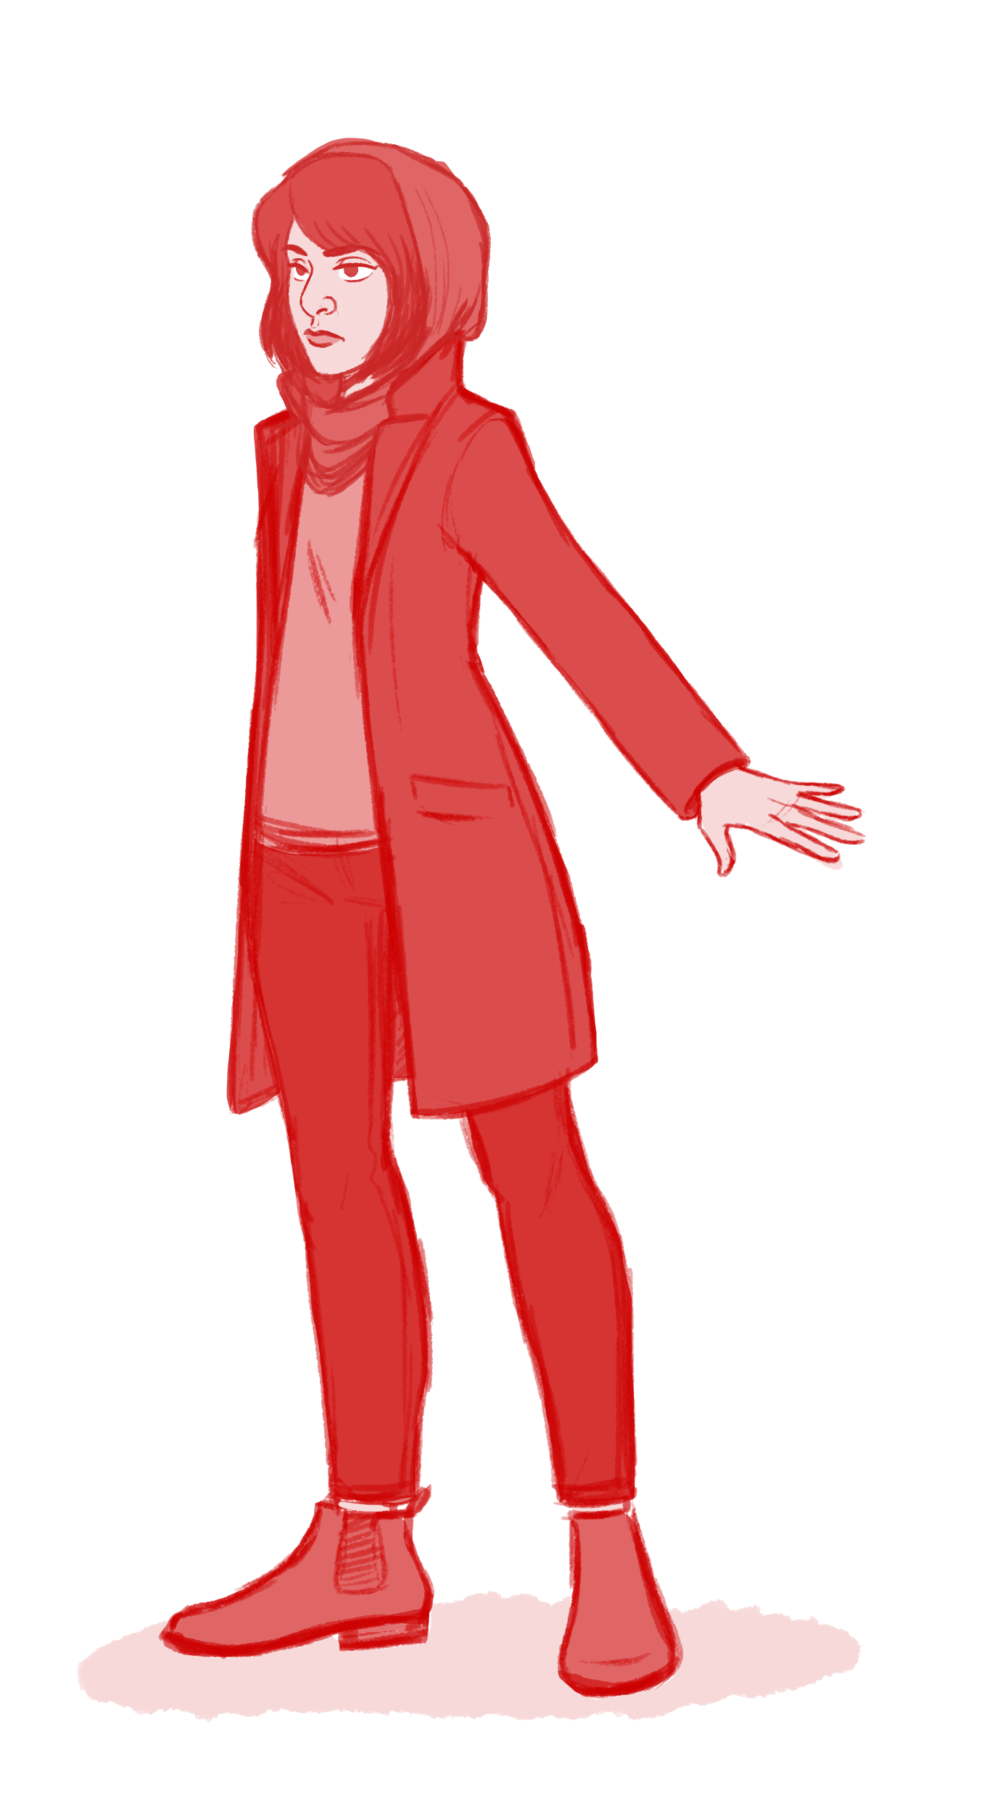 female_investigator_outfits_002.png